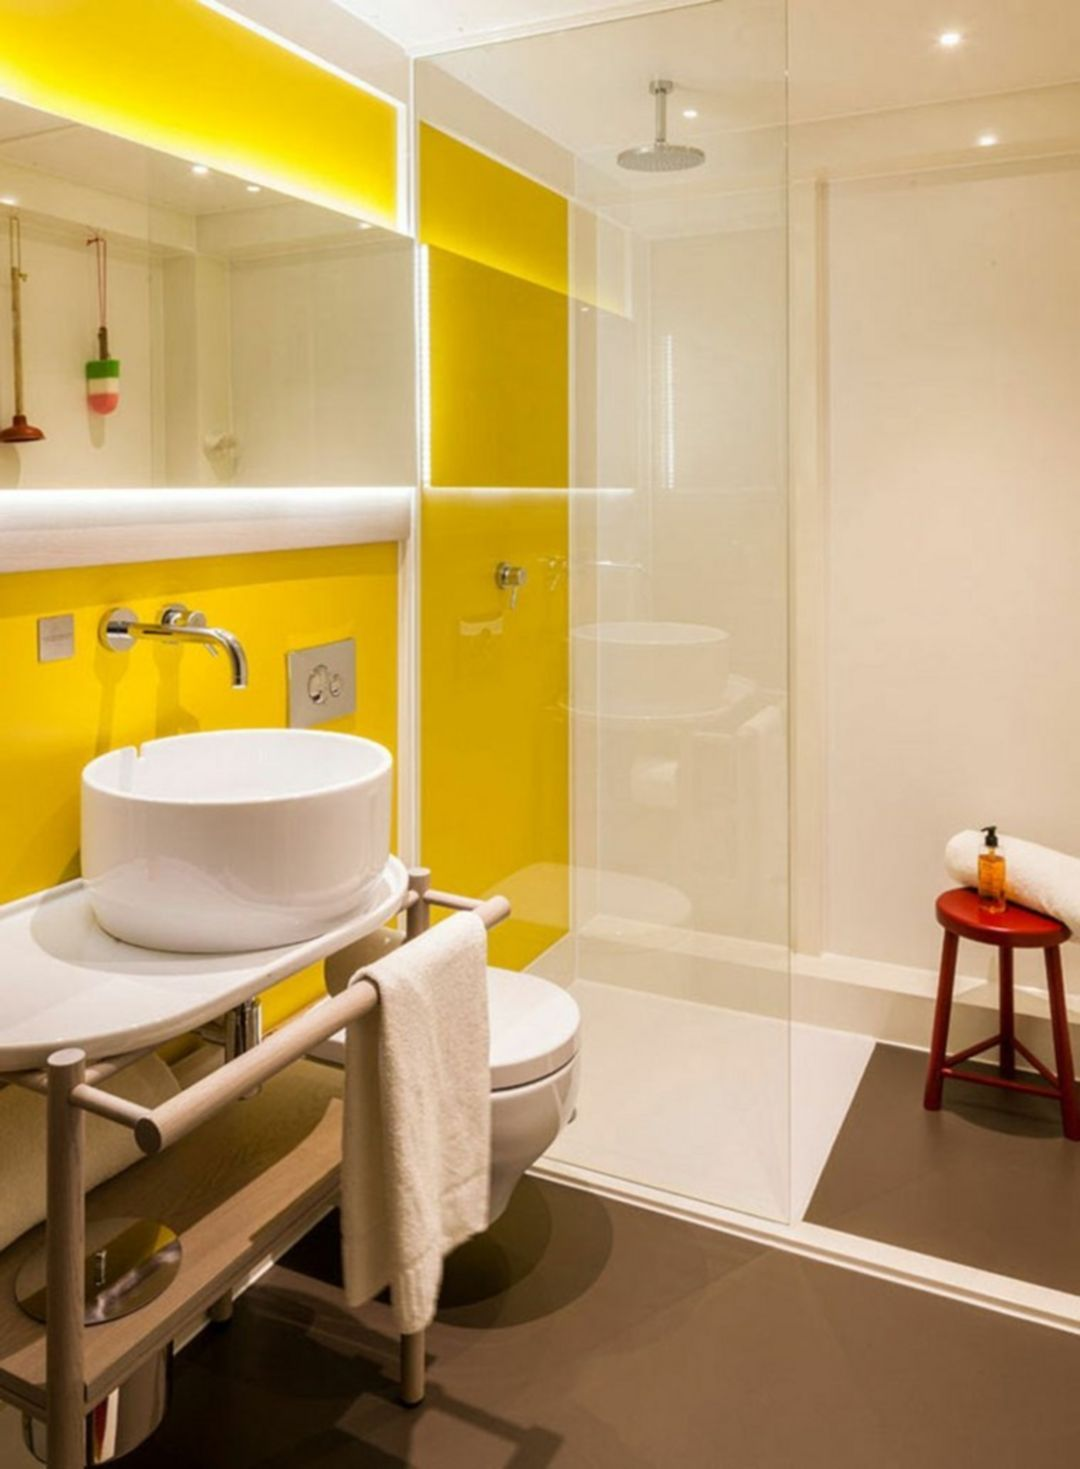 yellow bathroom, yellow wall, white wall, white sink, white vanity, white toilet, brown floor